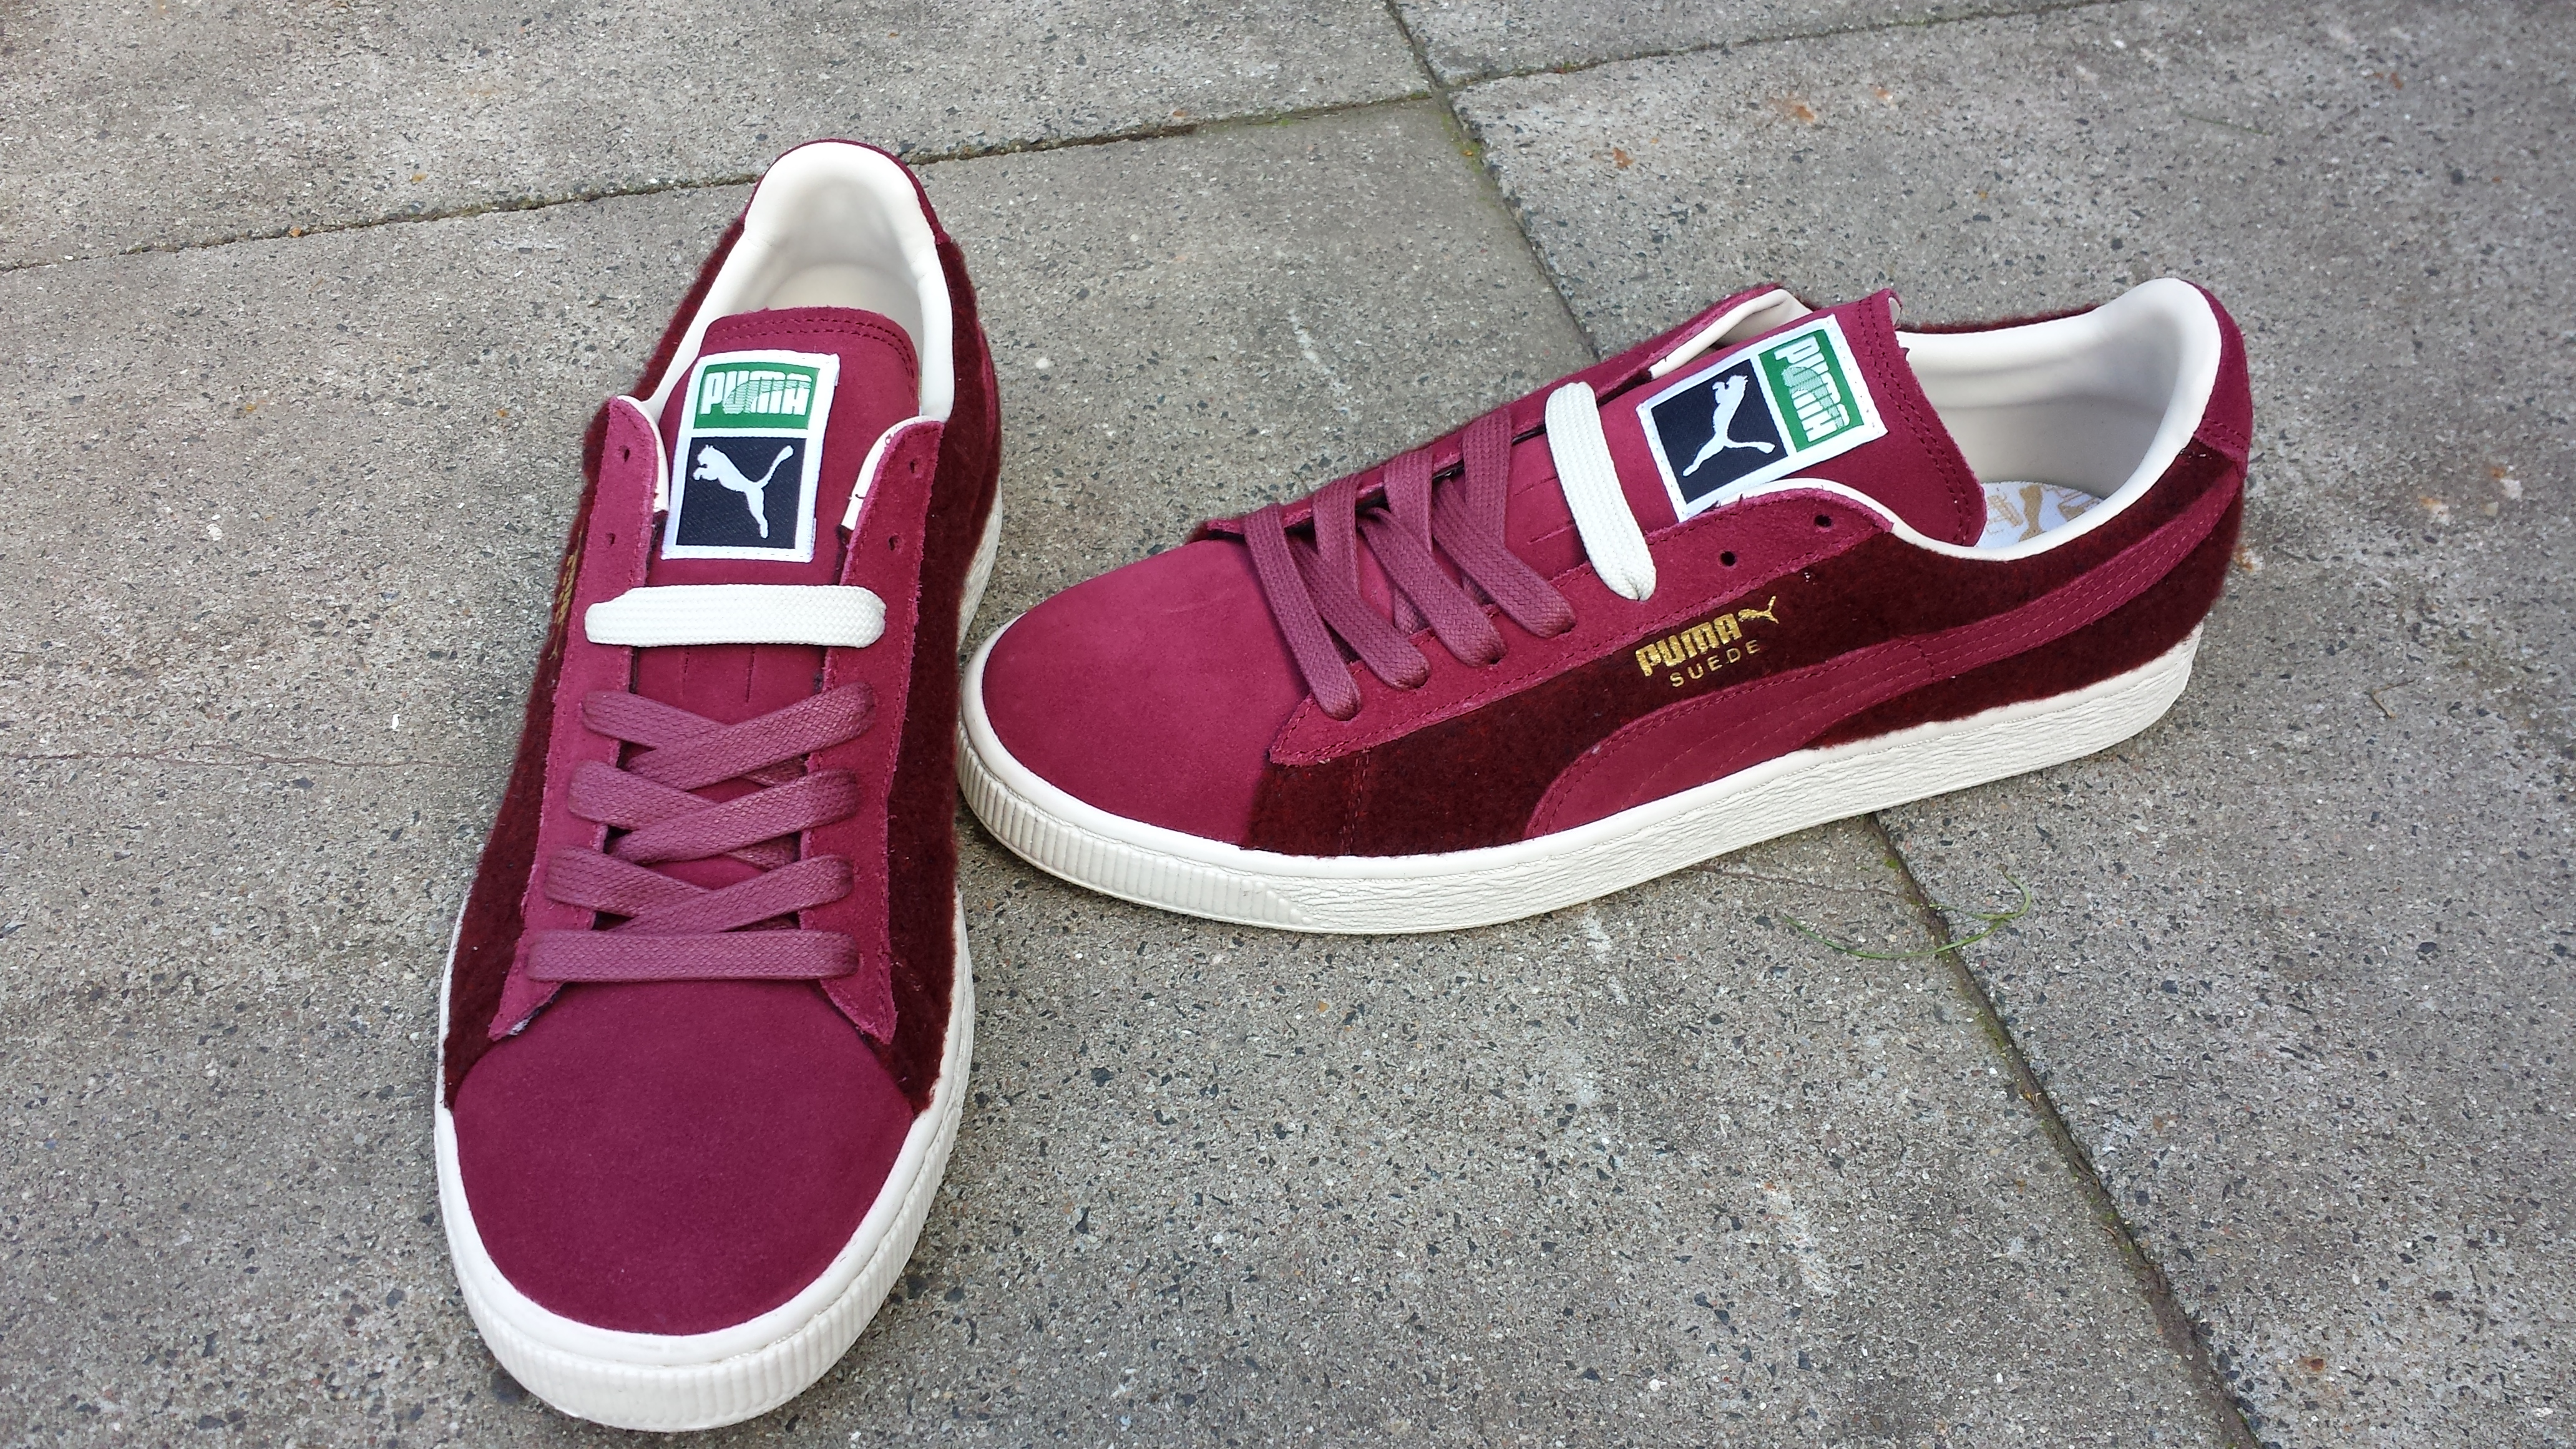 new product 23802 98390 Puma Suede City Menswear Schuh / Sneaker